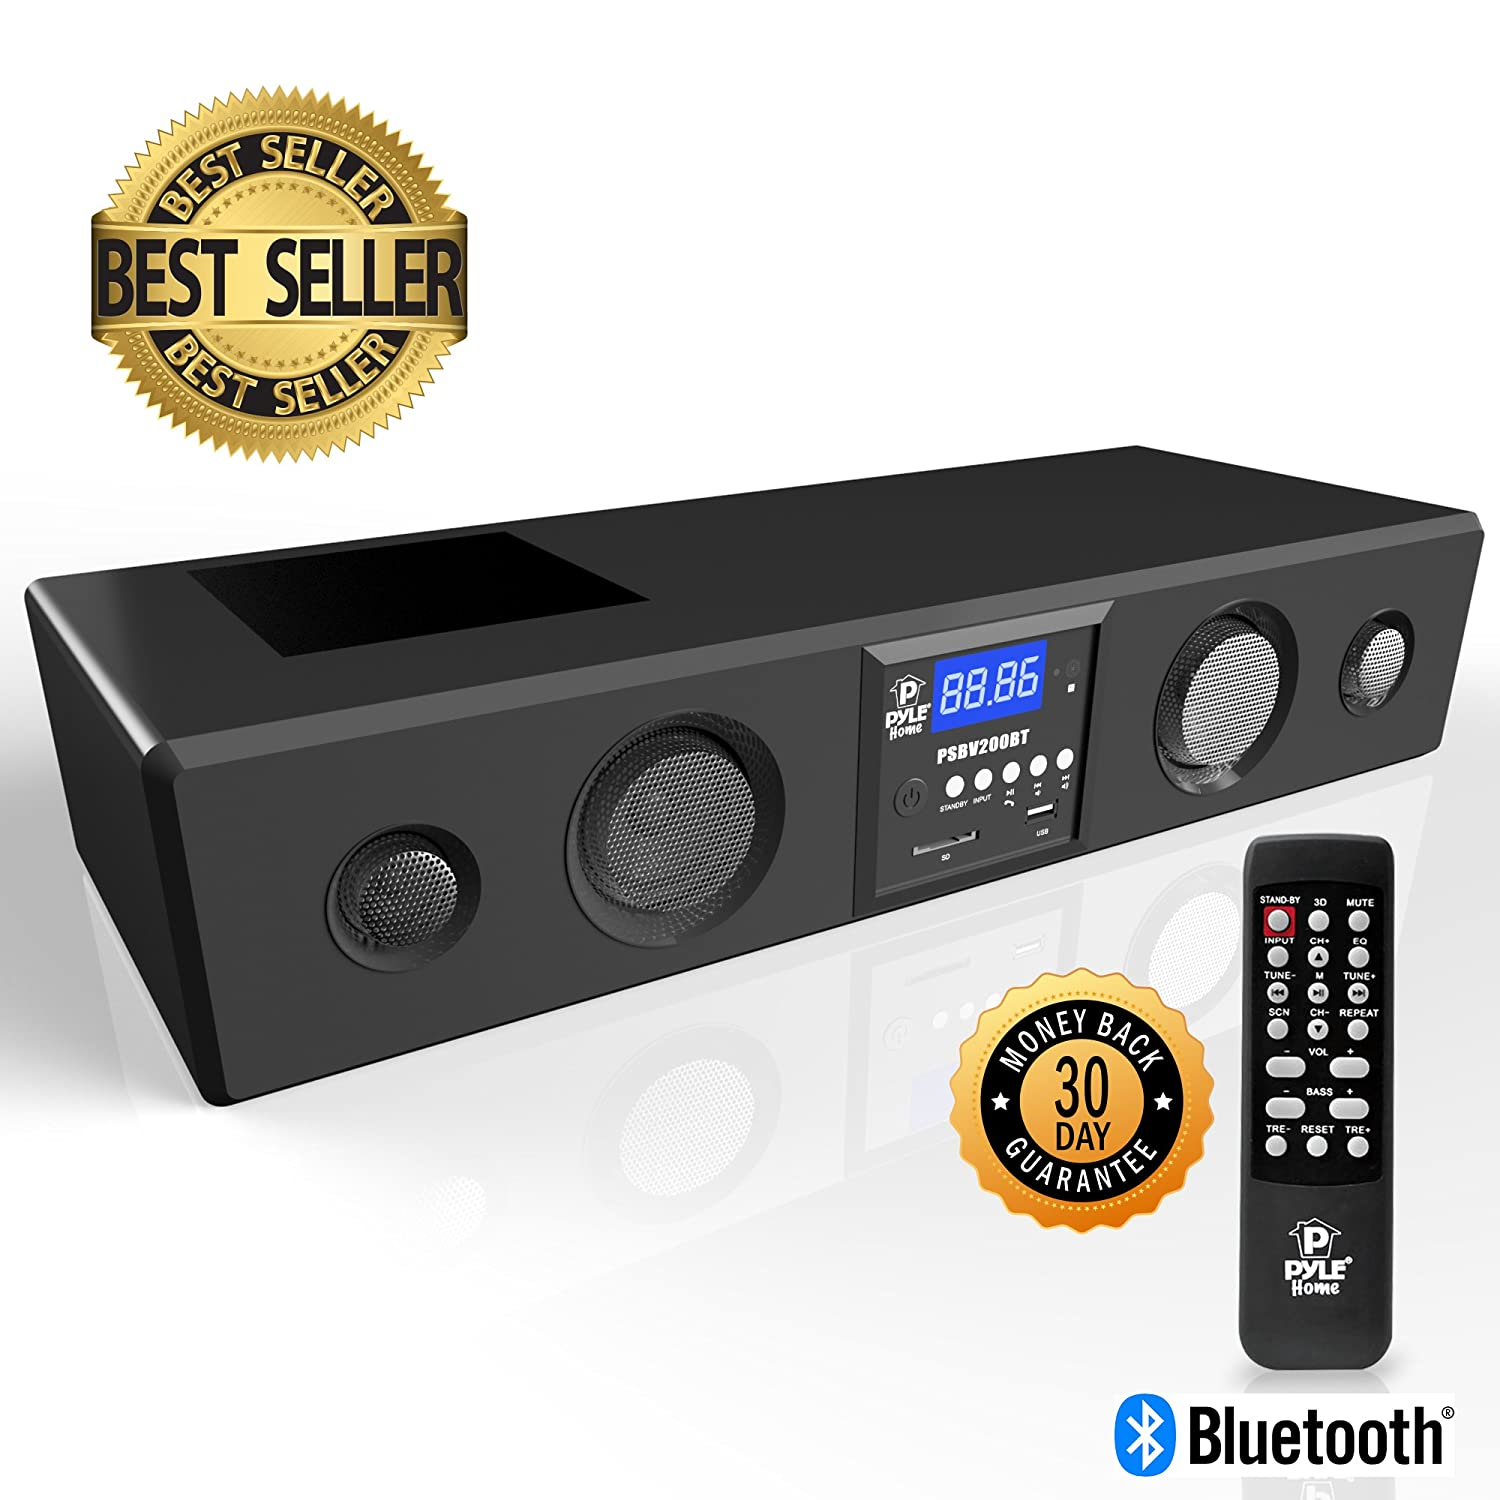 Pyle 3D Surround Bluetooth Soundbar - Sound System Bass Speakers Compatible  to TV, USB, SD, FM Radio with 3 5mm AUX Input , Remote Control, For Home